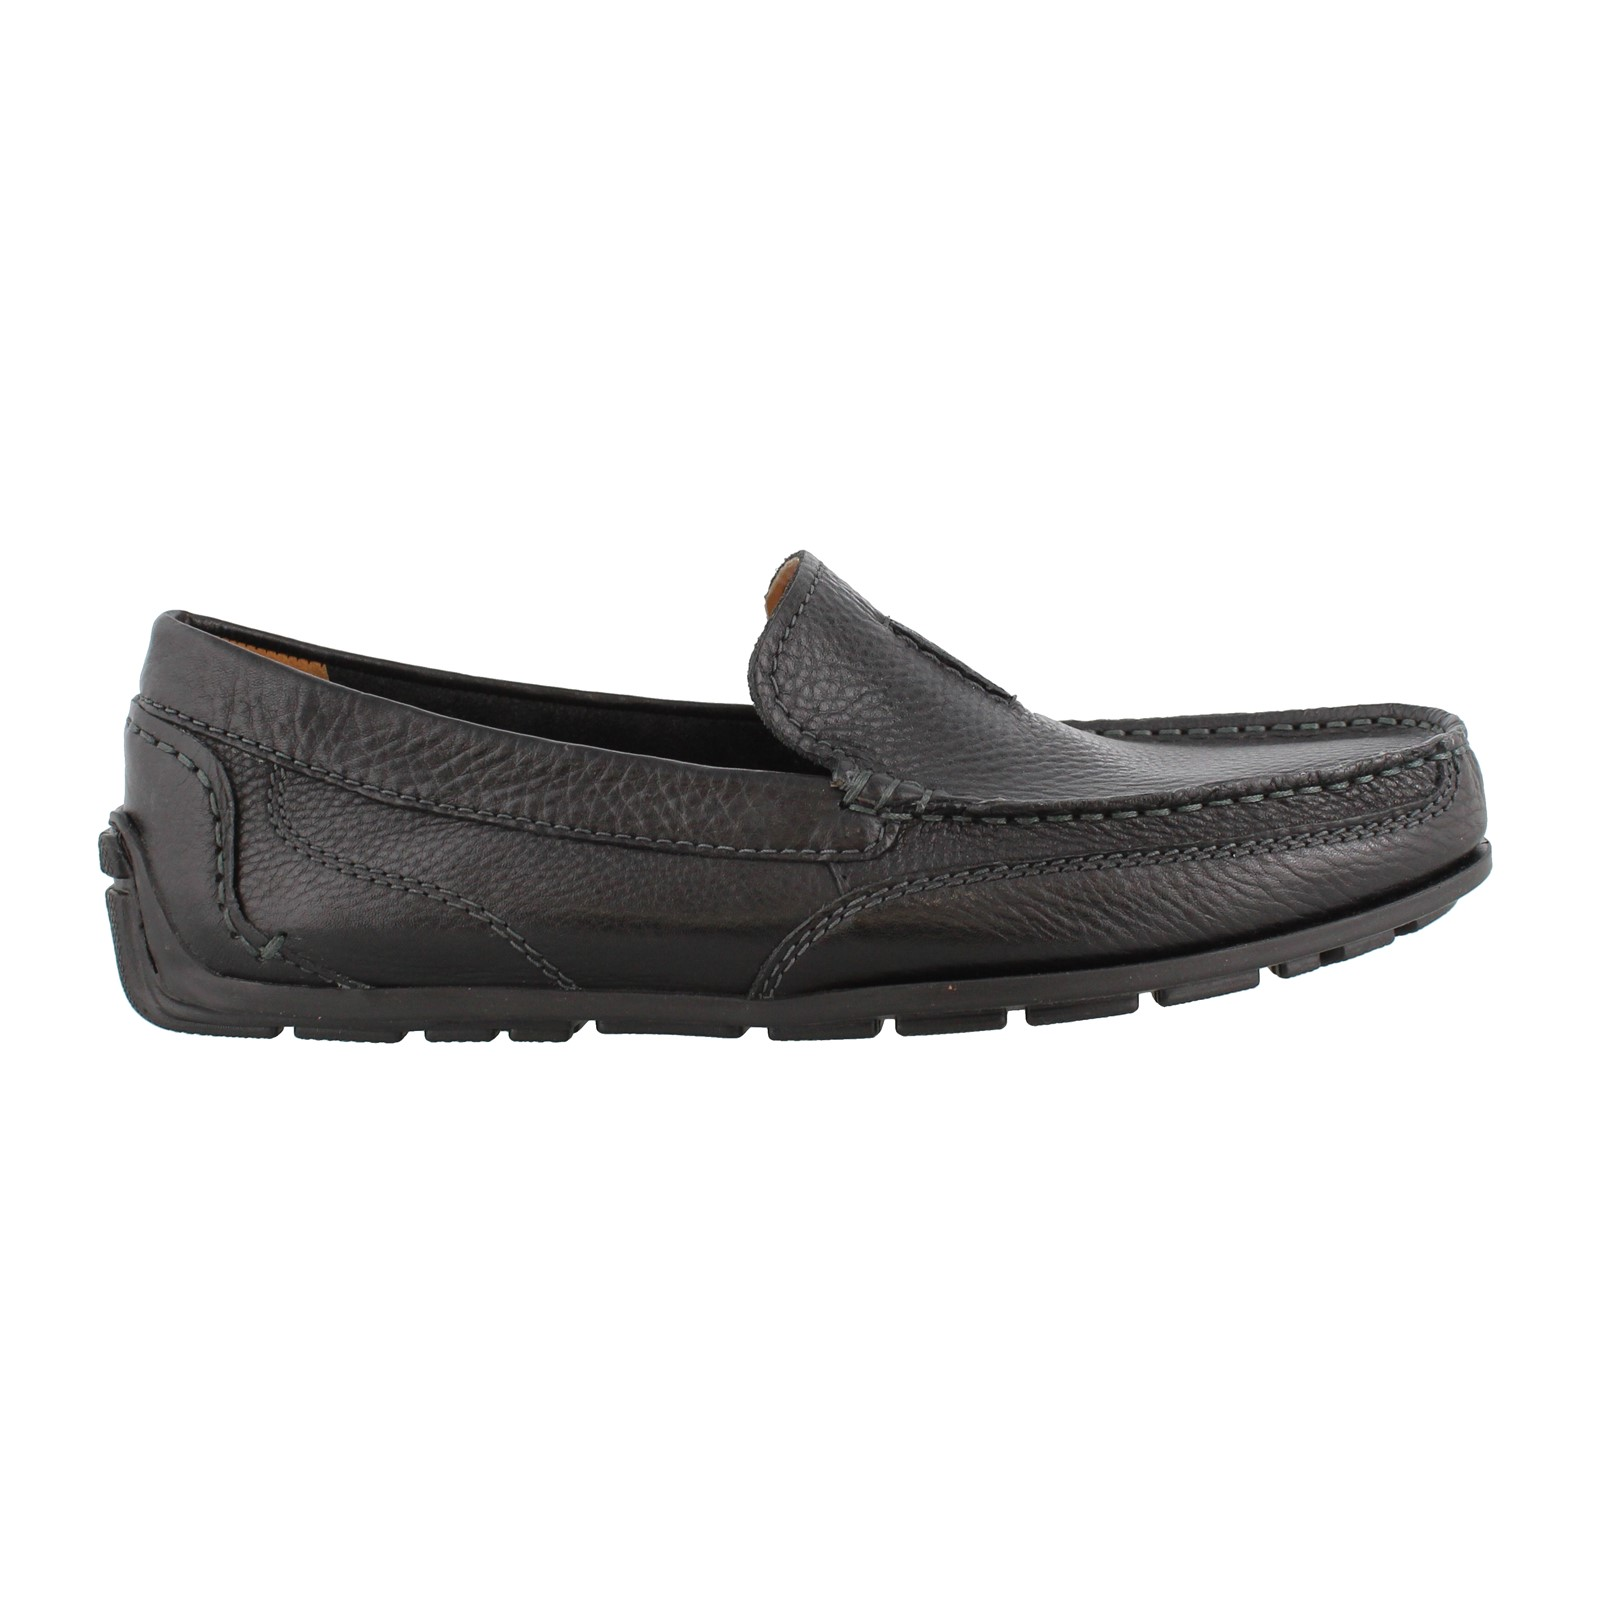 Men's Clarks, Benero Race Slip on Drivers